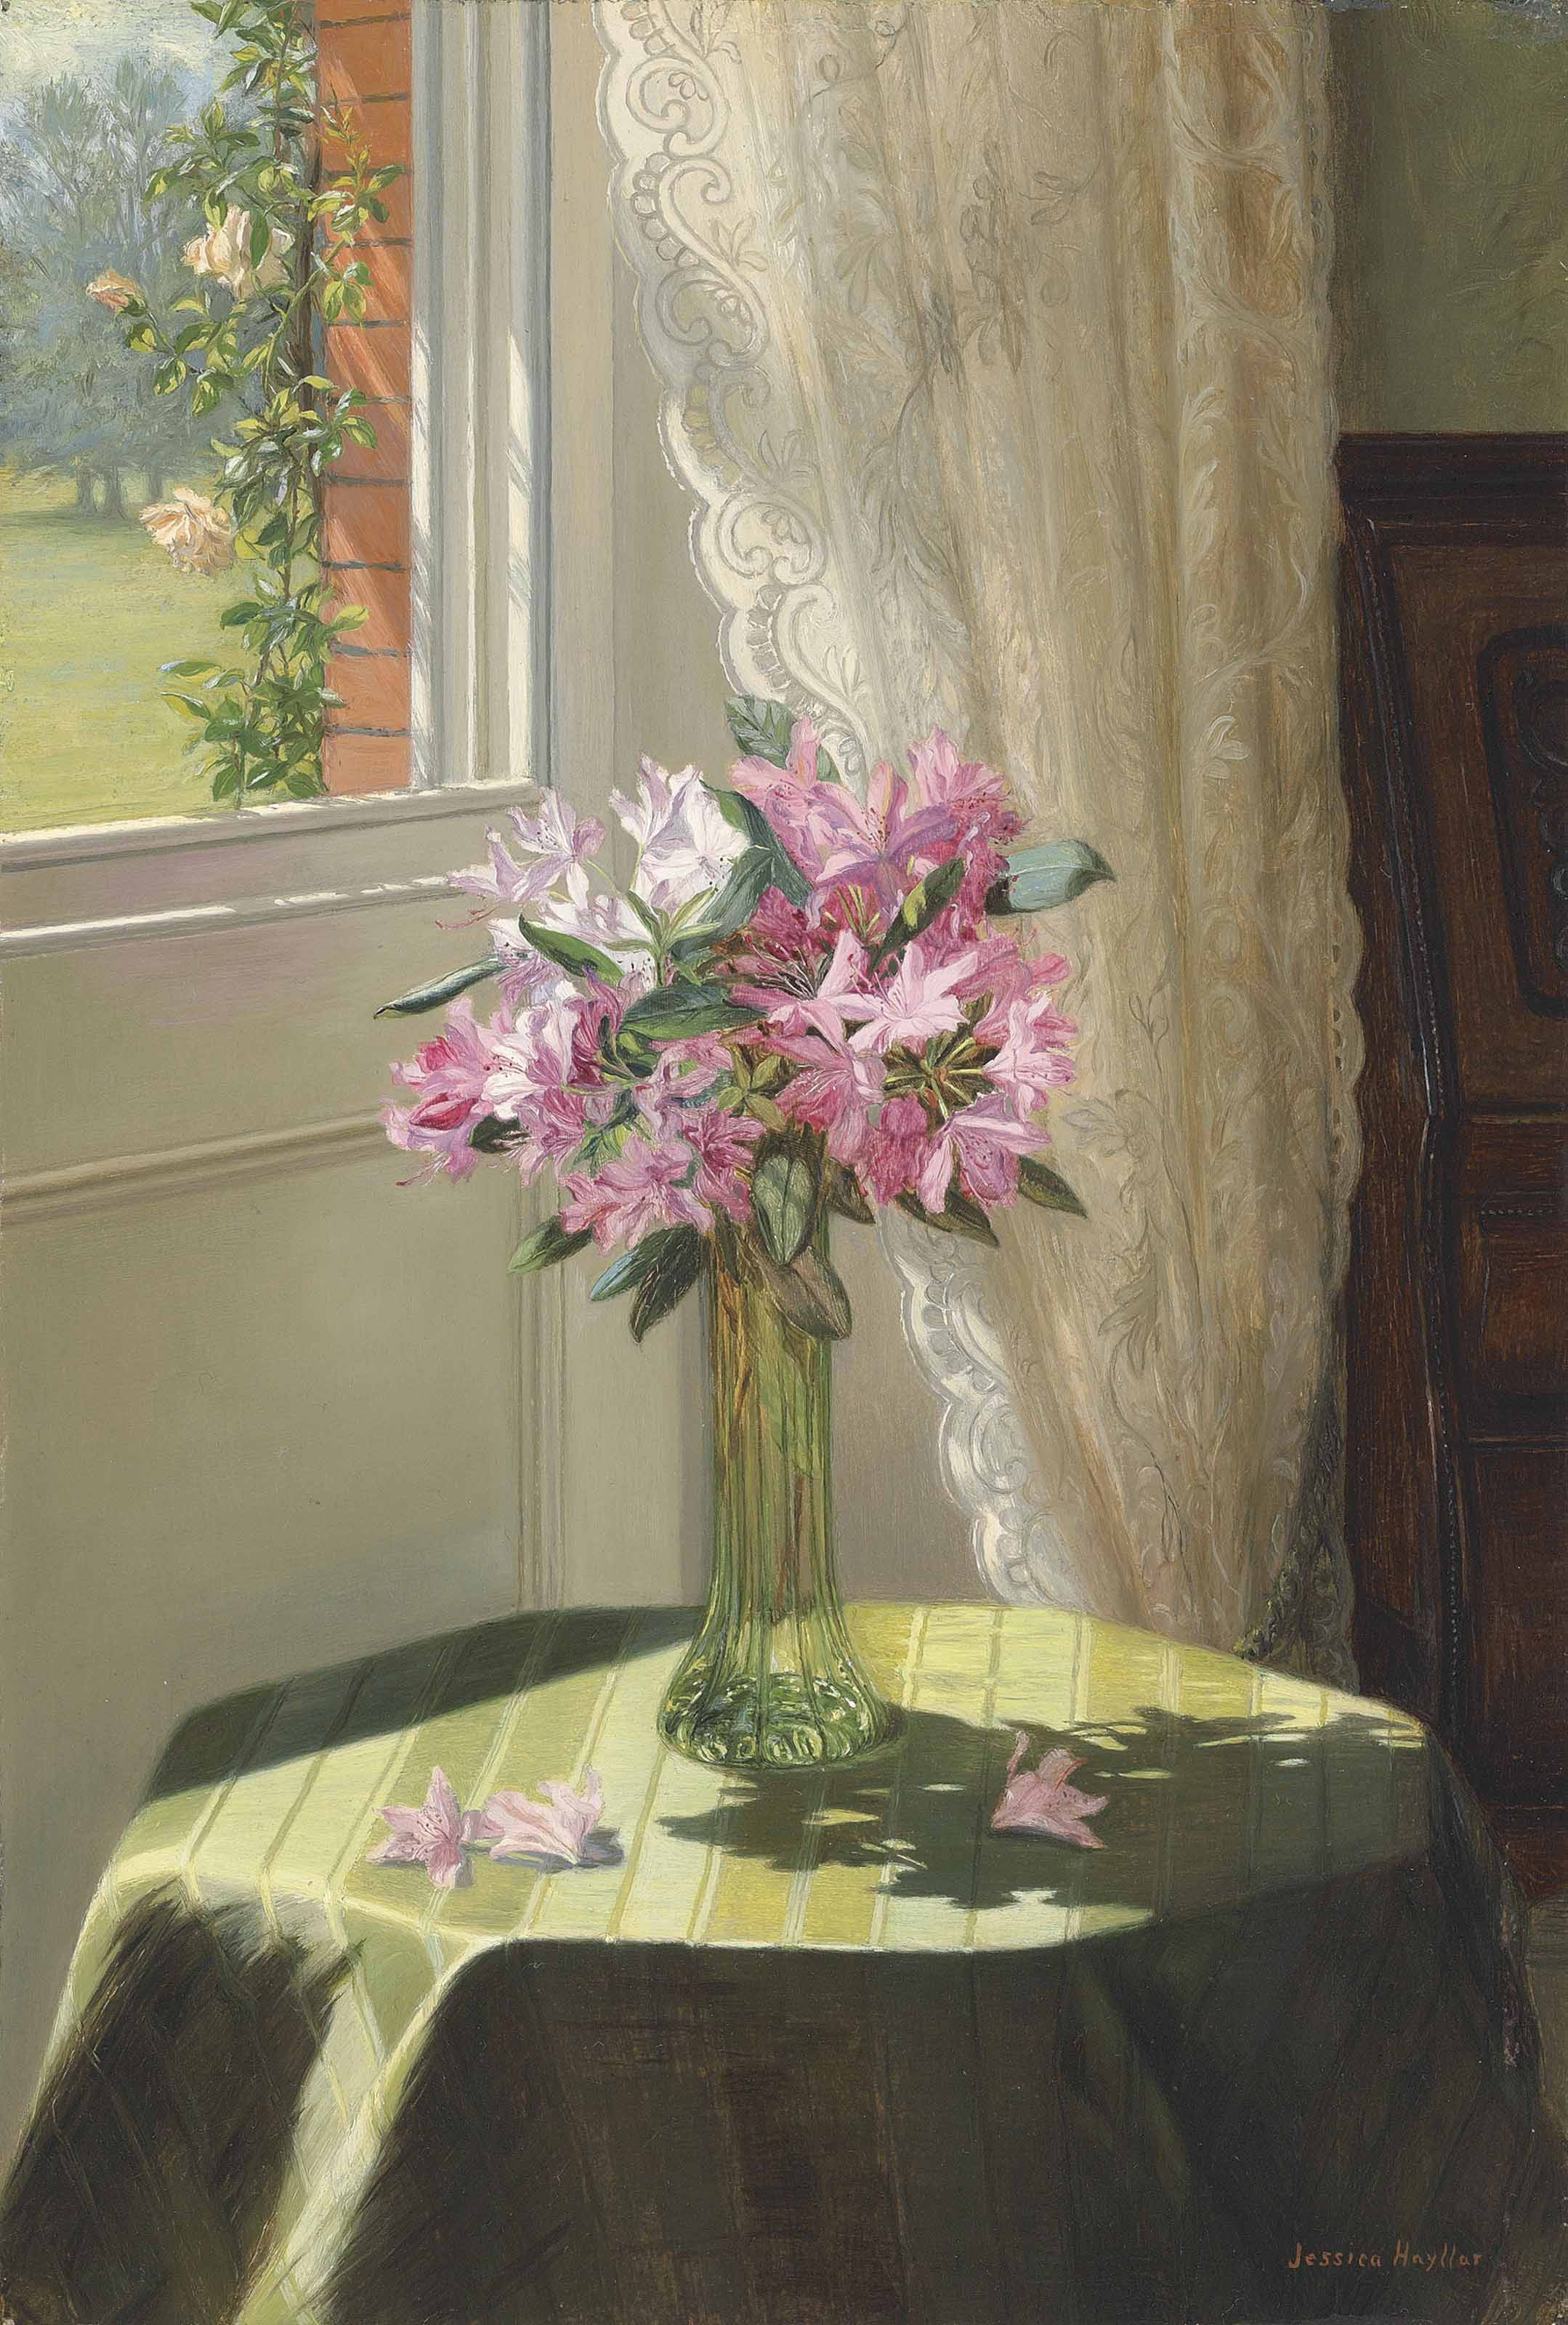 Rhododendrons by a window